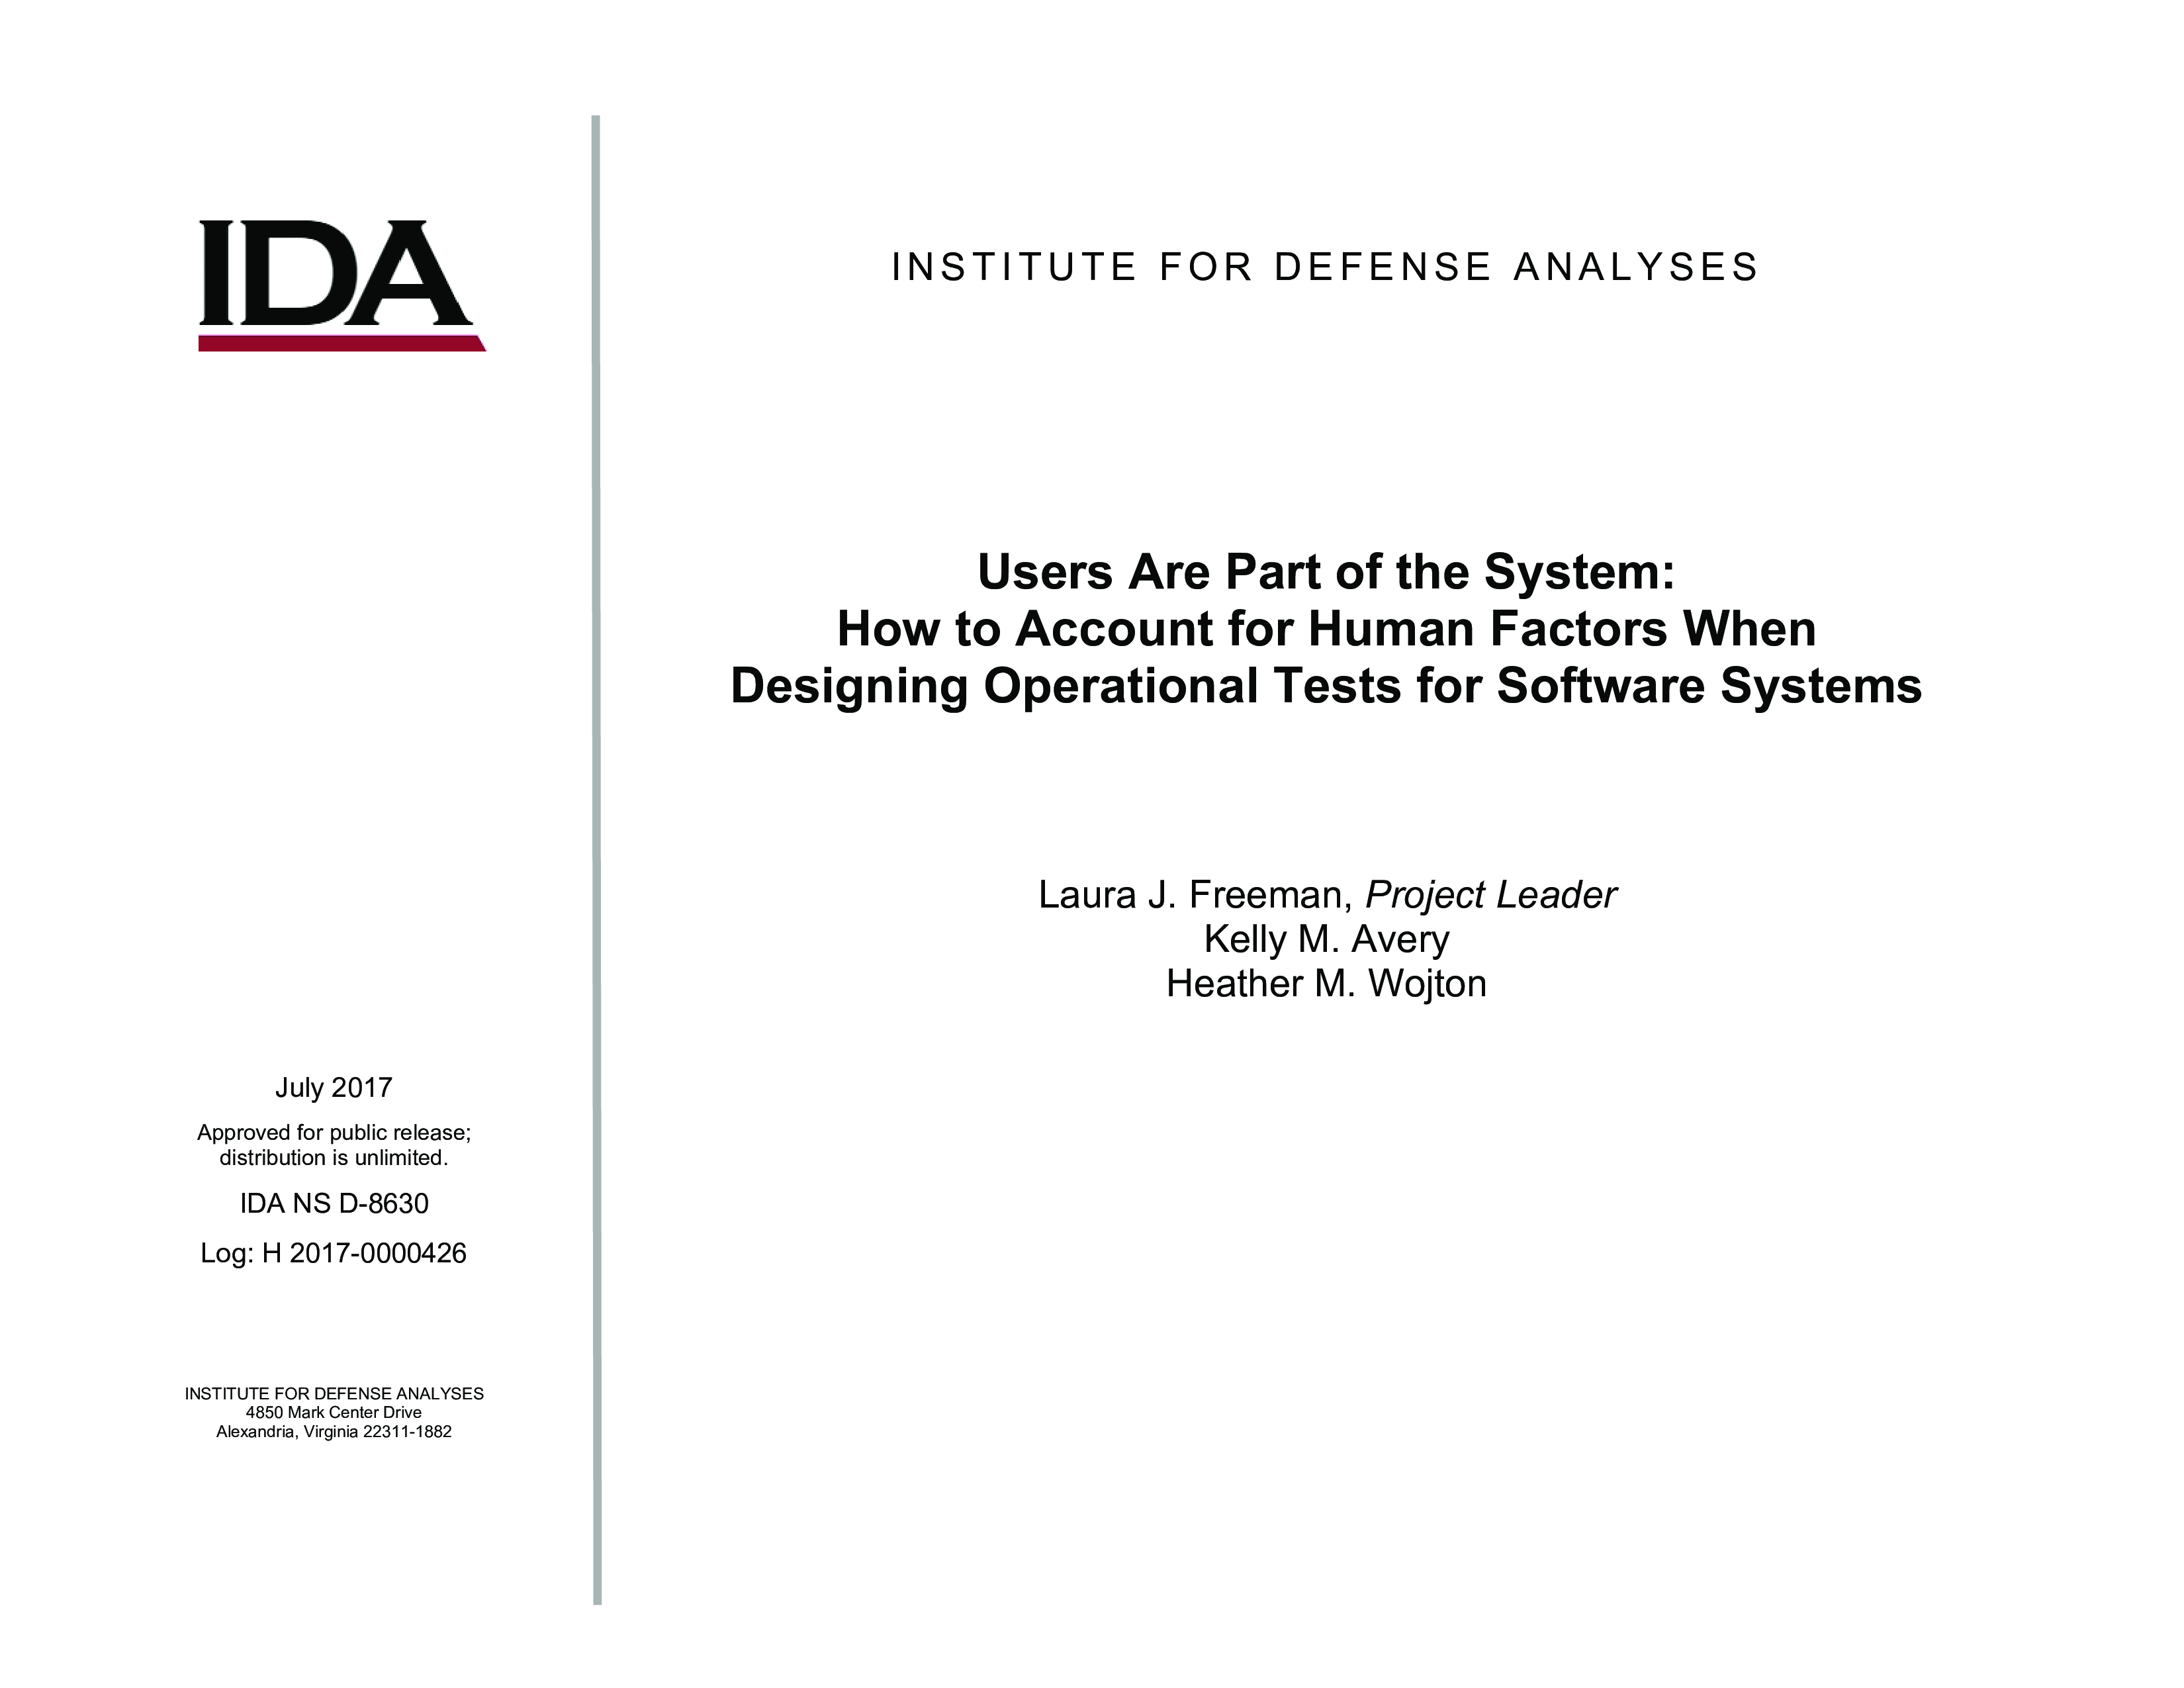 Users Are Part of the System: How to Account for Human Factors When Designing Operational Tests for Software Systems